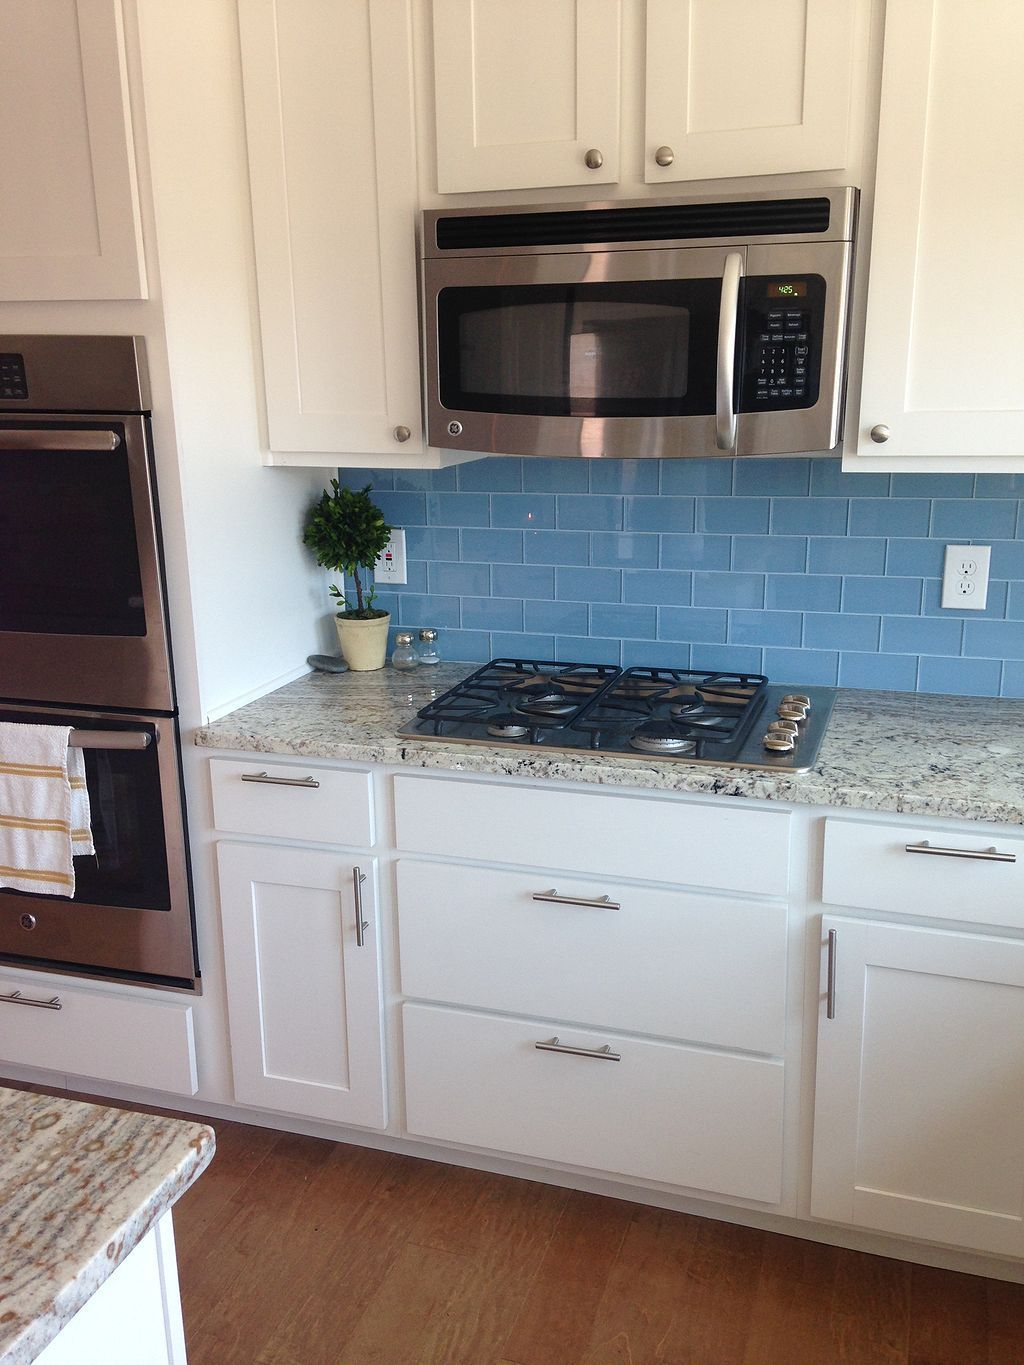 Classy Subway Tile Backsplash For Kitchen Or Bathroom (11 ...